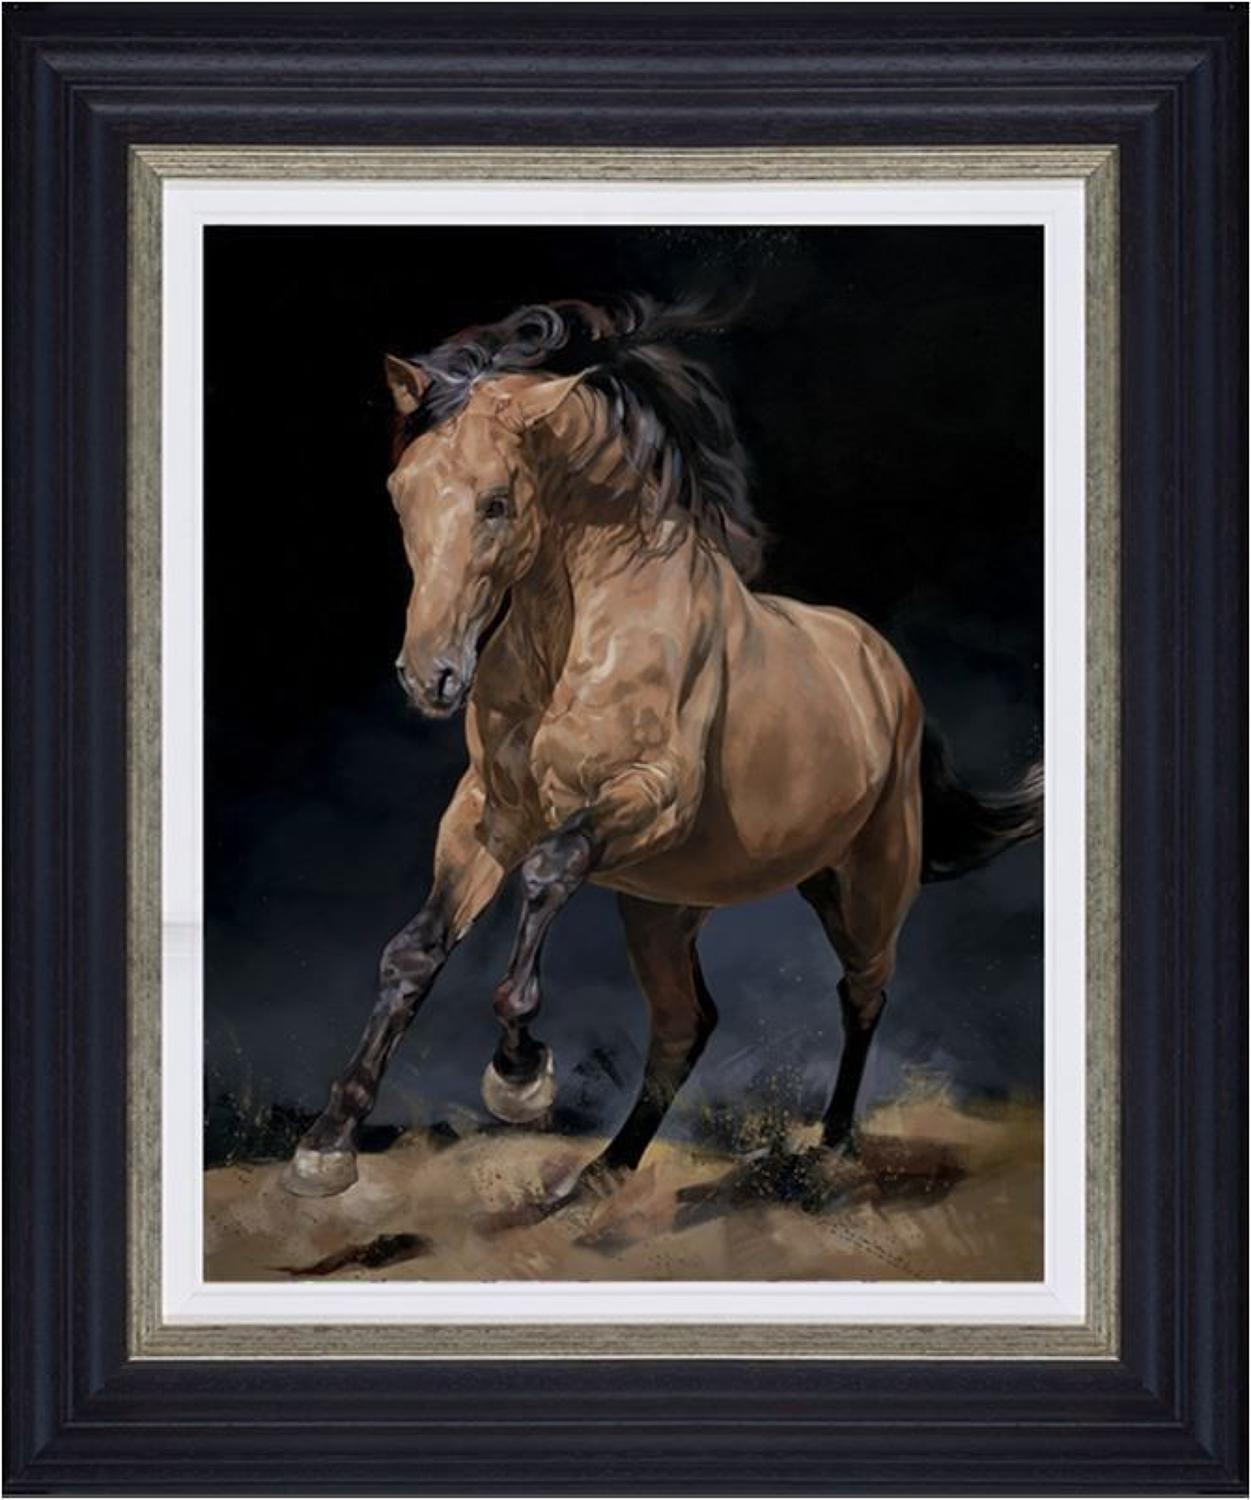 Chasing the Wind Framed Canvas Art Print by Debbie Boon